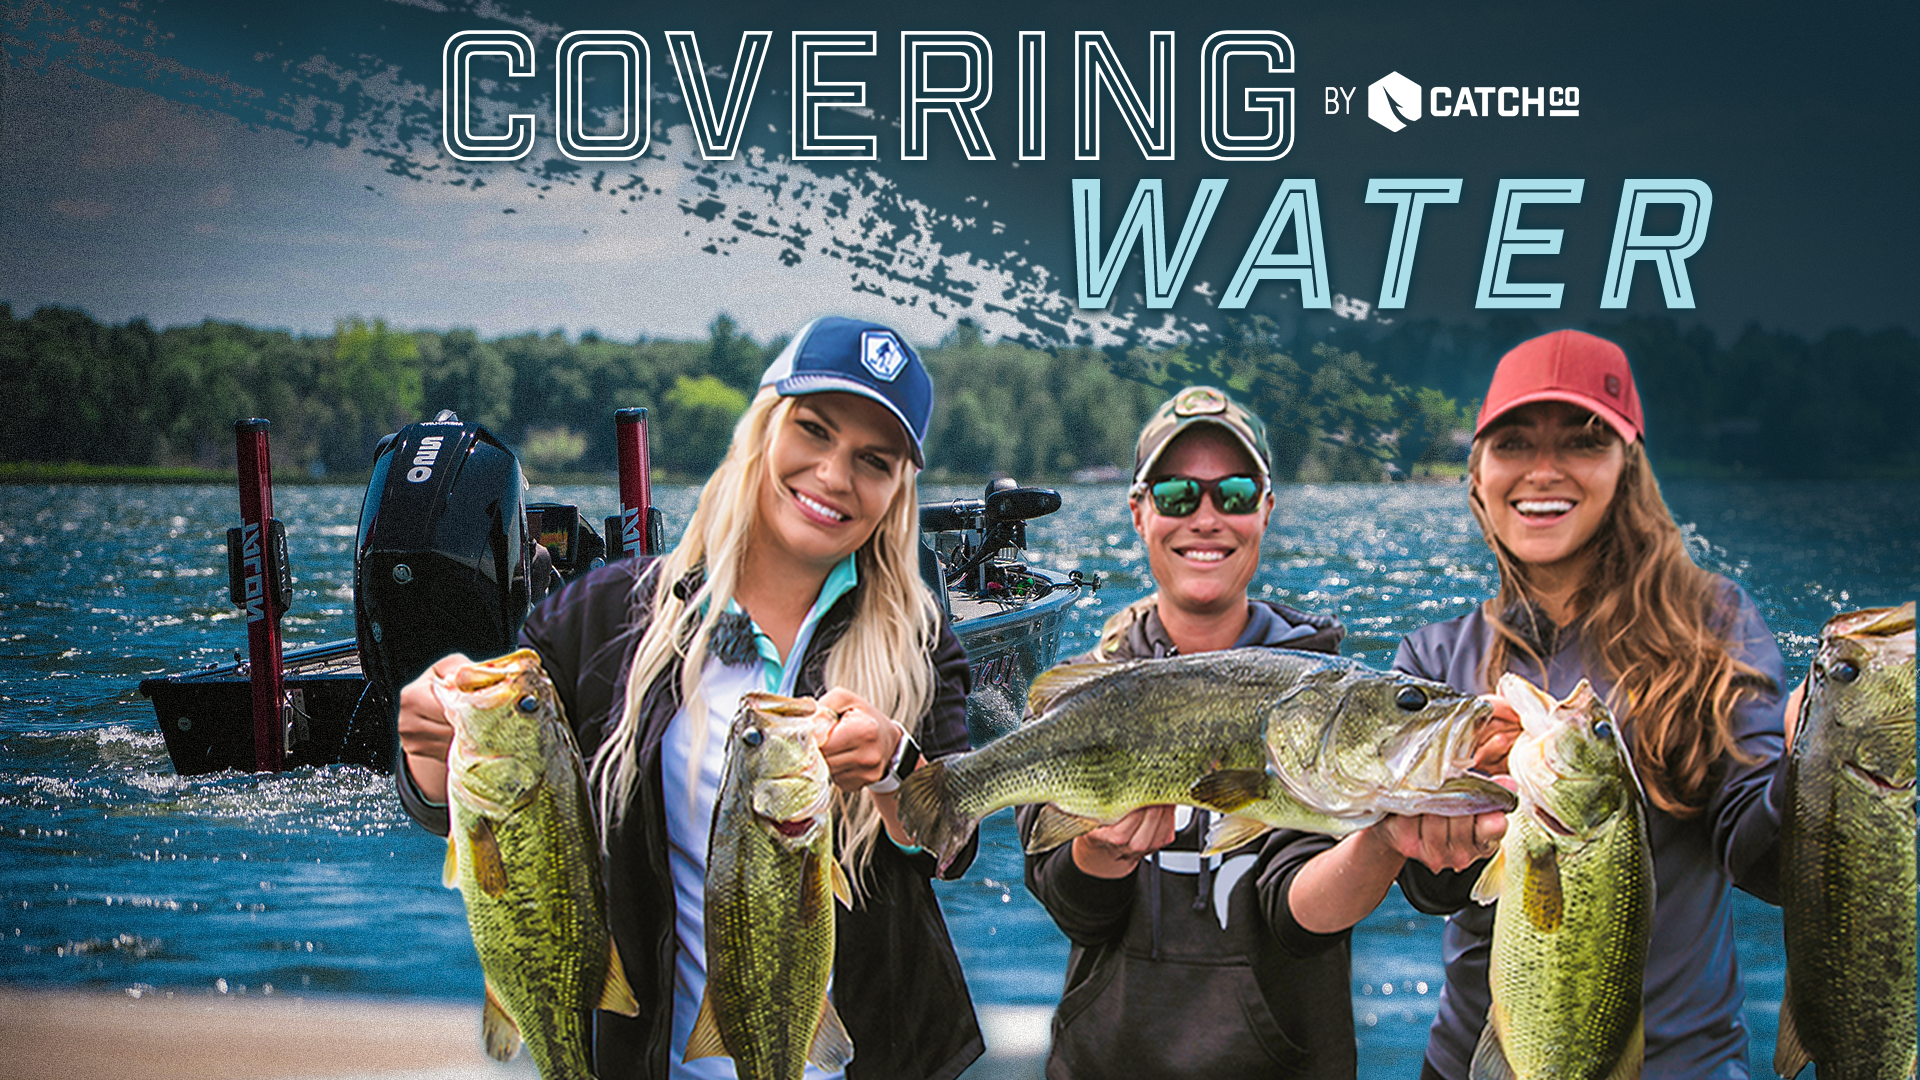 Covering Water by Catch Co.